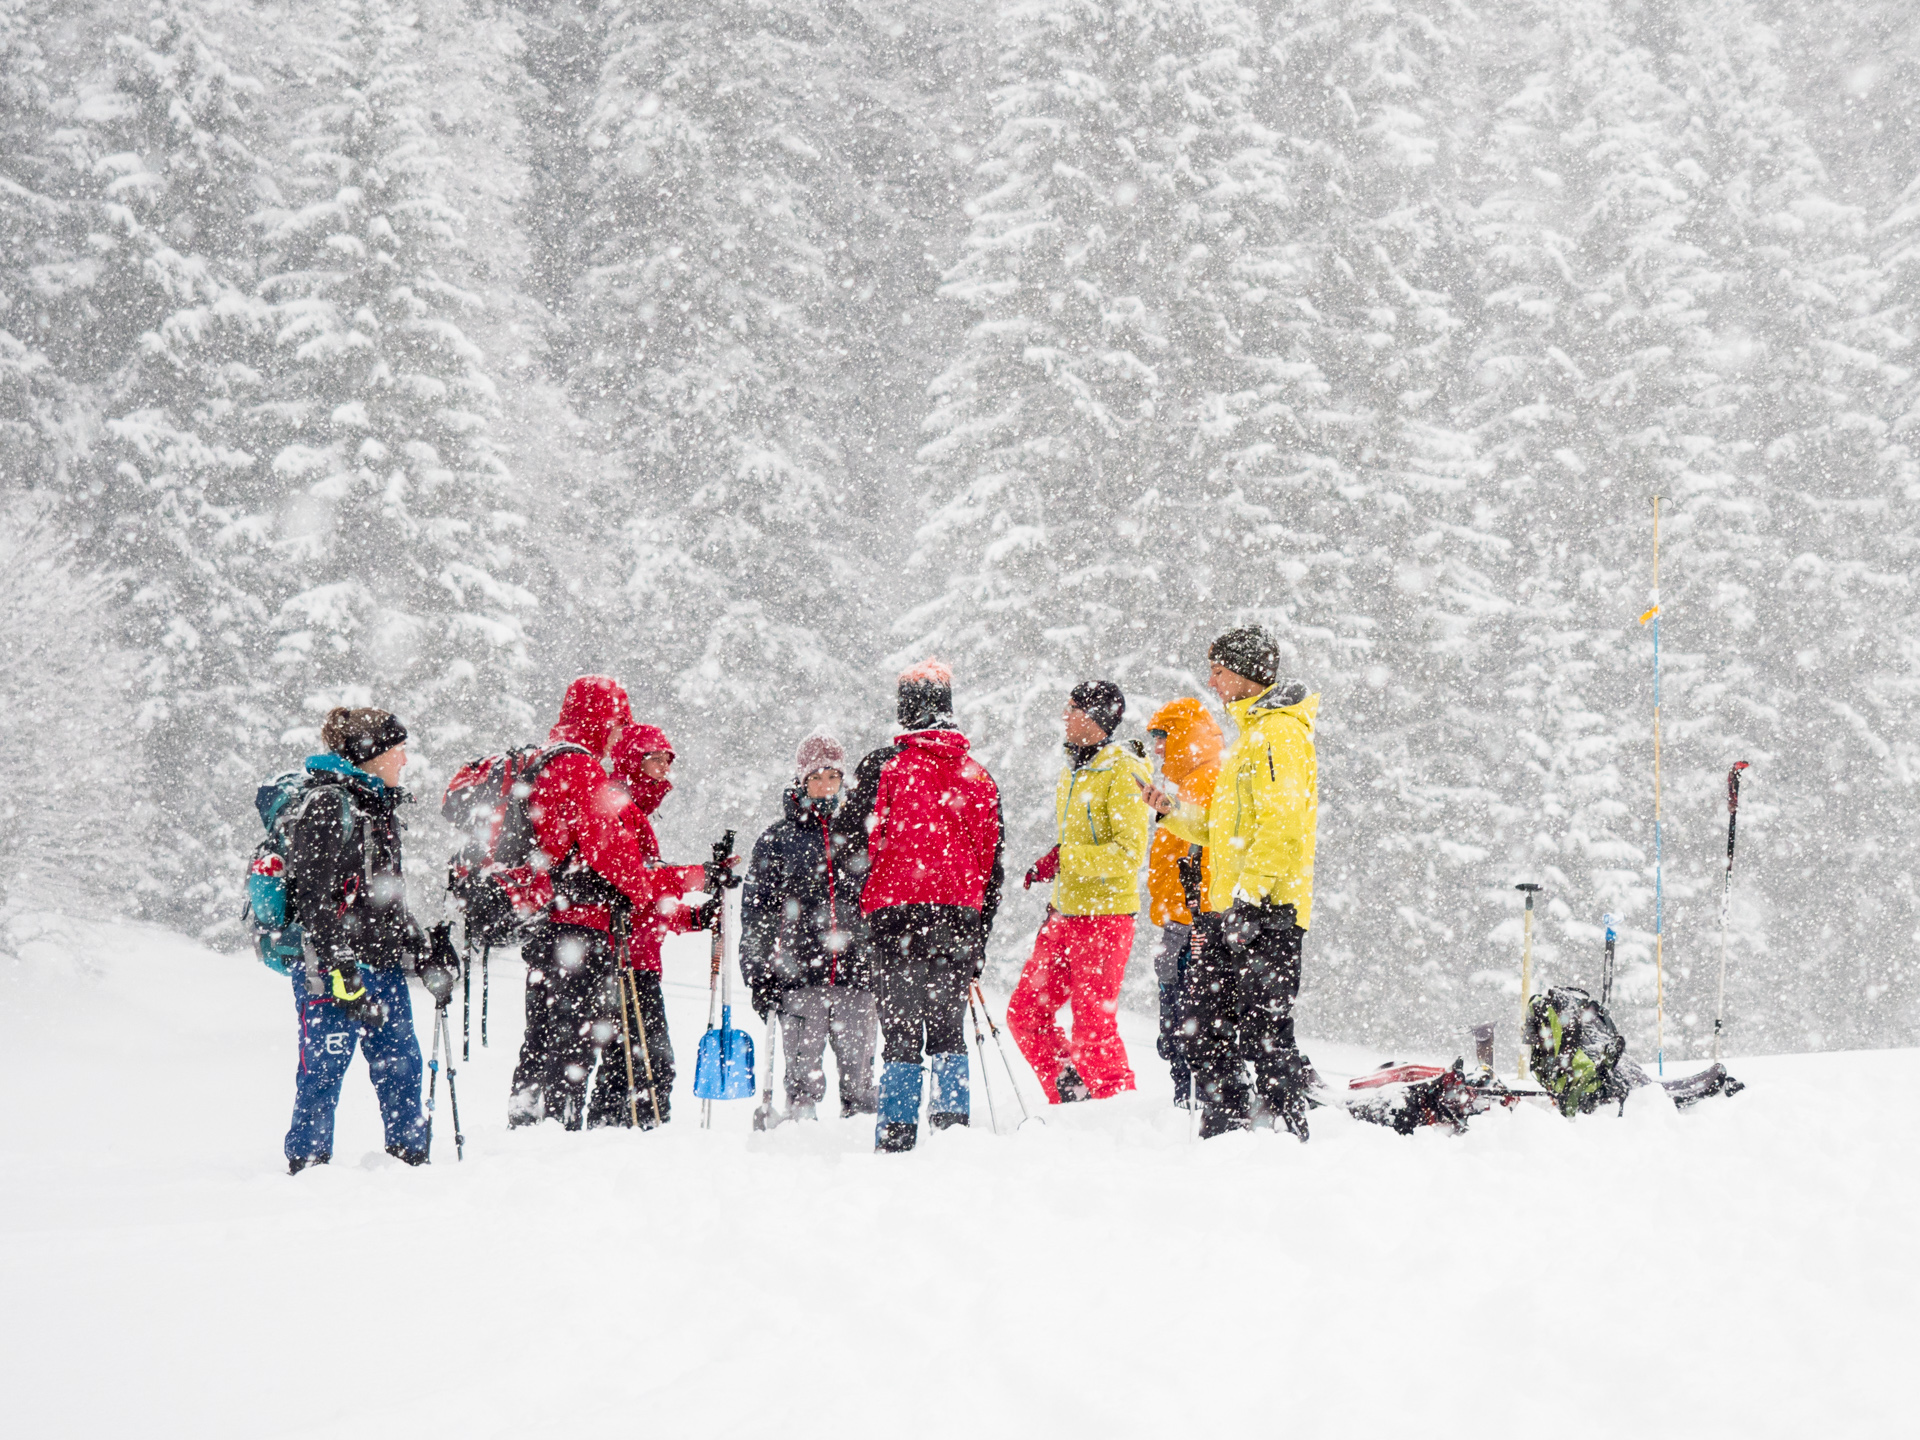 Group of people listening to instructor during heavy snowfall